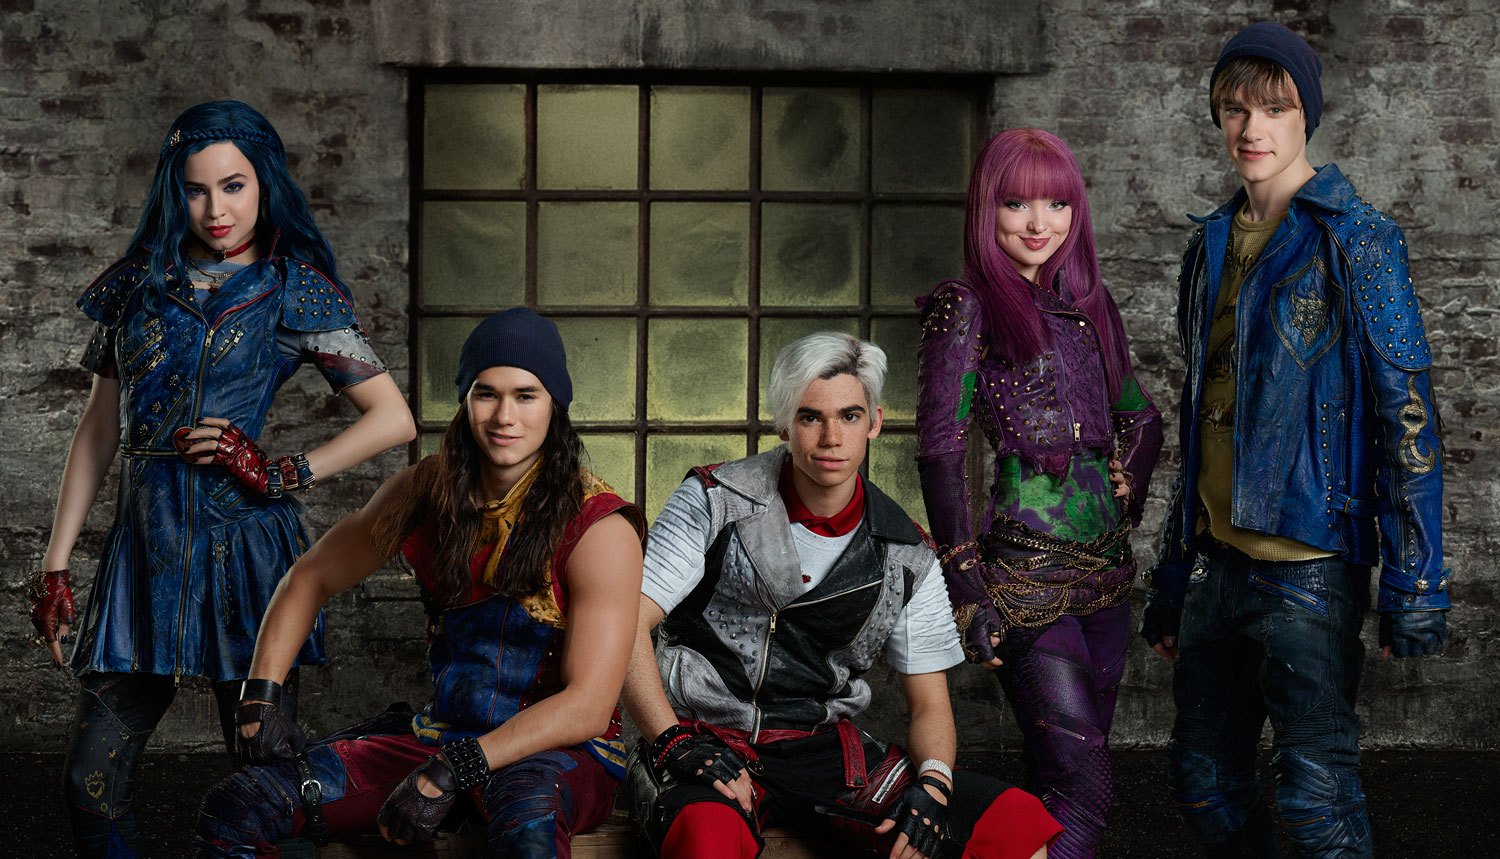 China mcclain breaking news and photos just jared jr page 5 - Watch The Descendants 2 Cast Announce The Summer 2017 Premiere Date